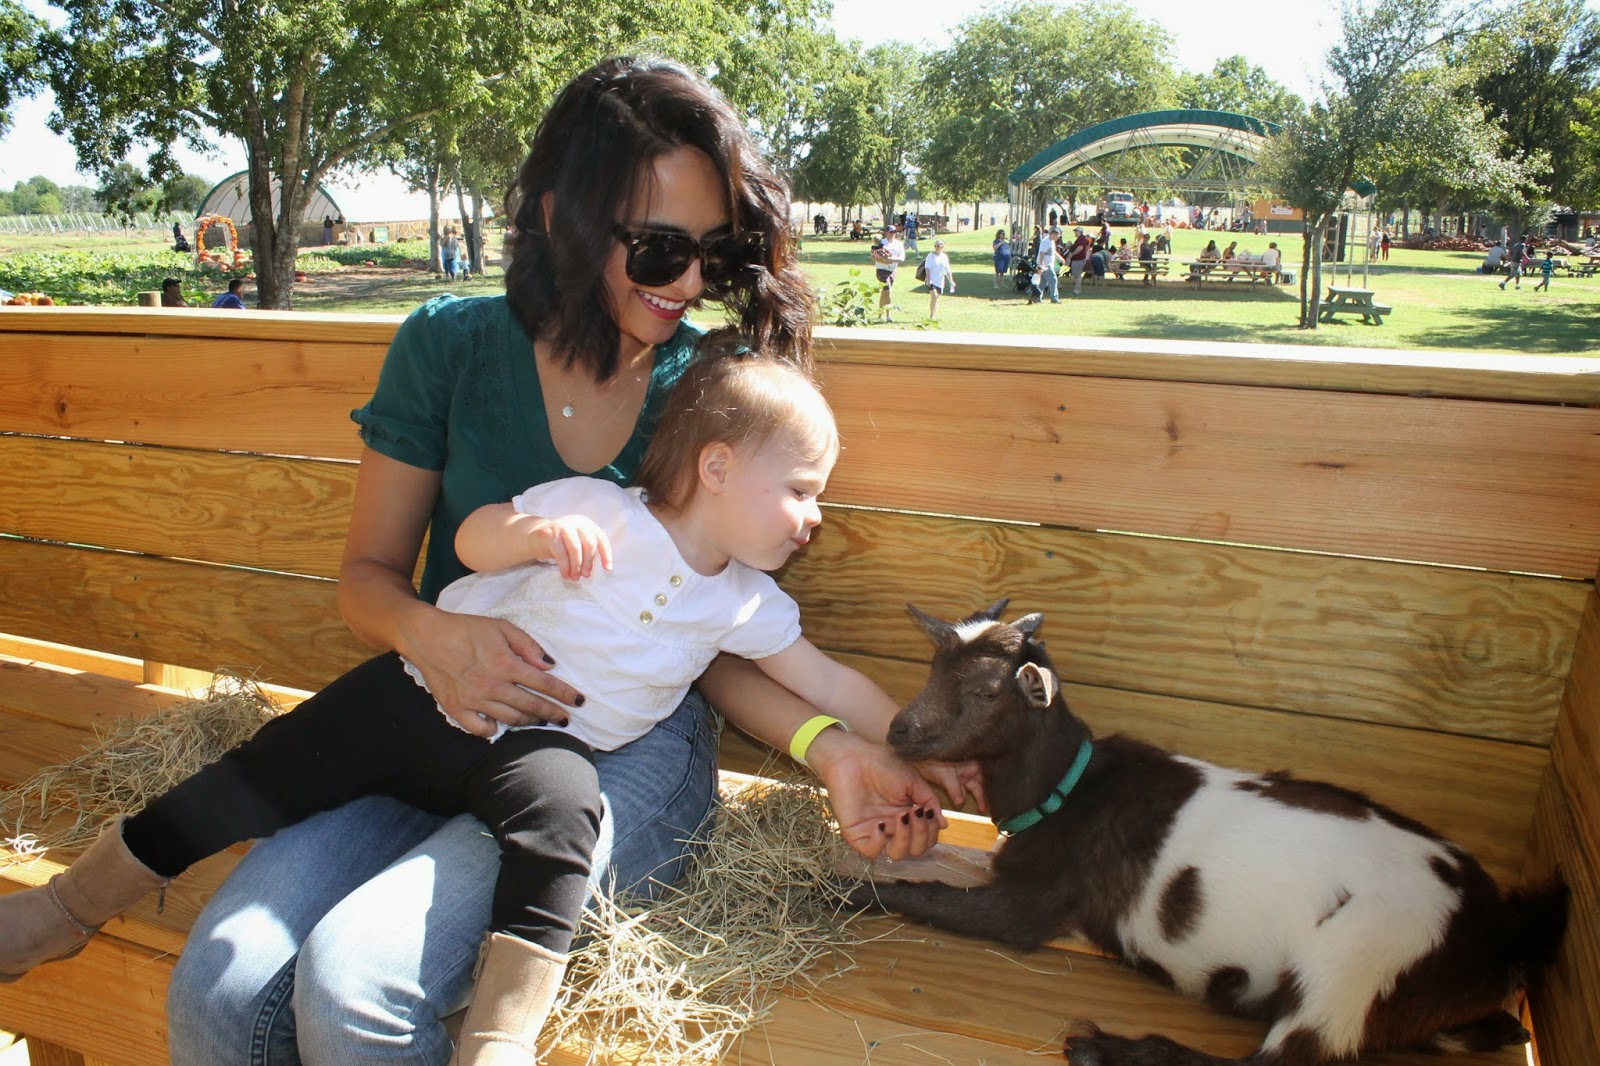 Mommy and Anabelle with baby goat | Bubbles and Gold (www.bubblesandgold.com)